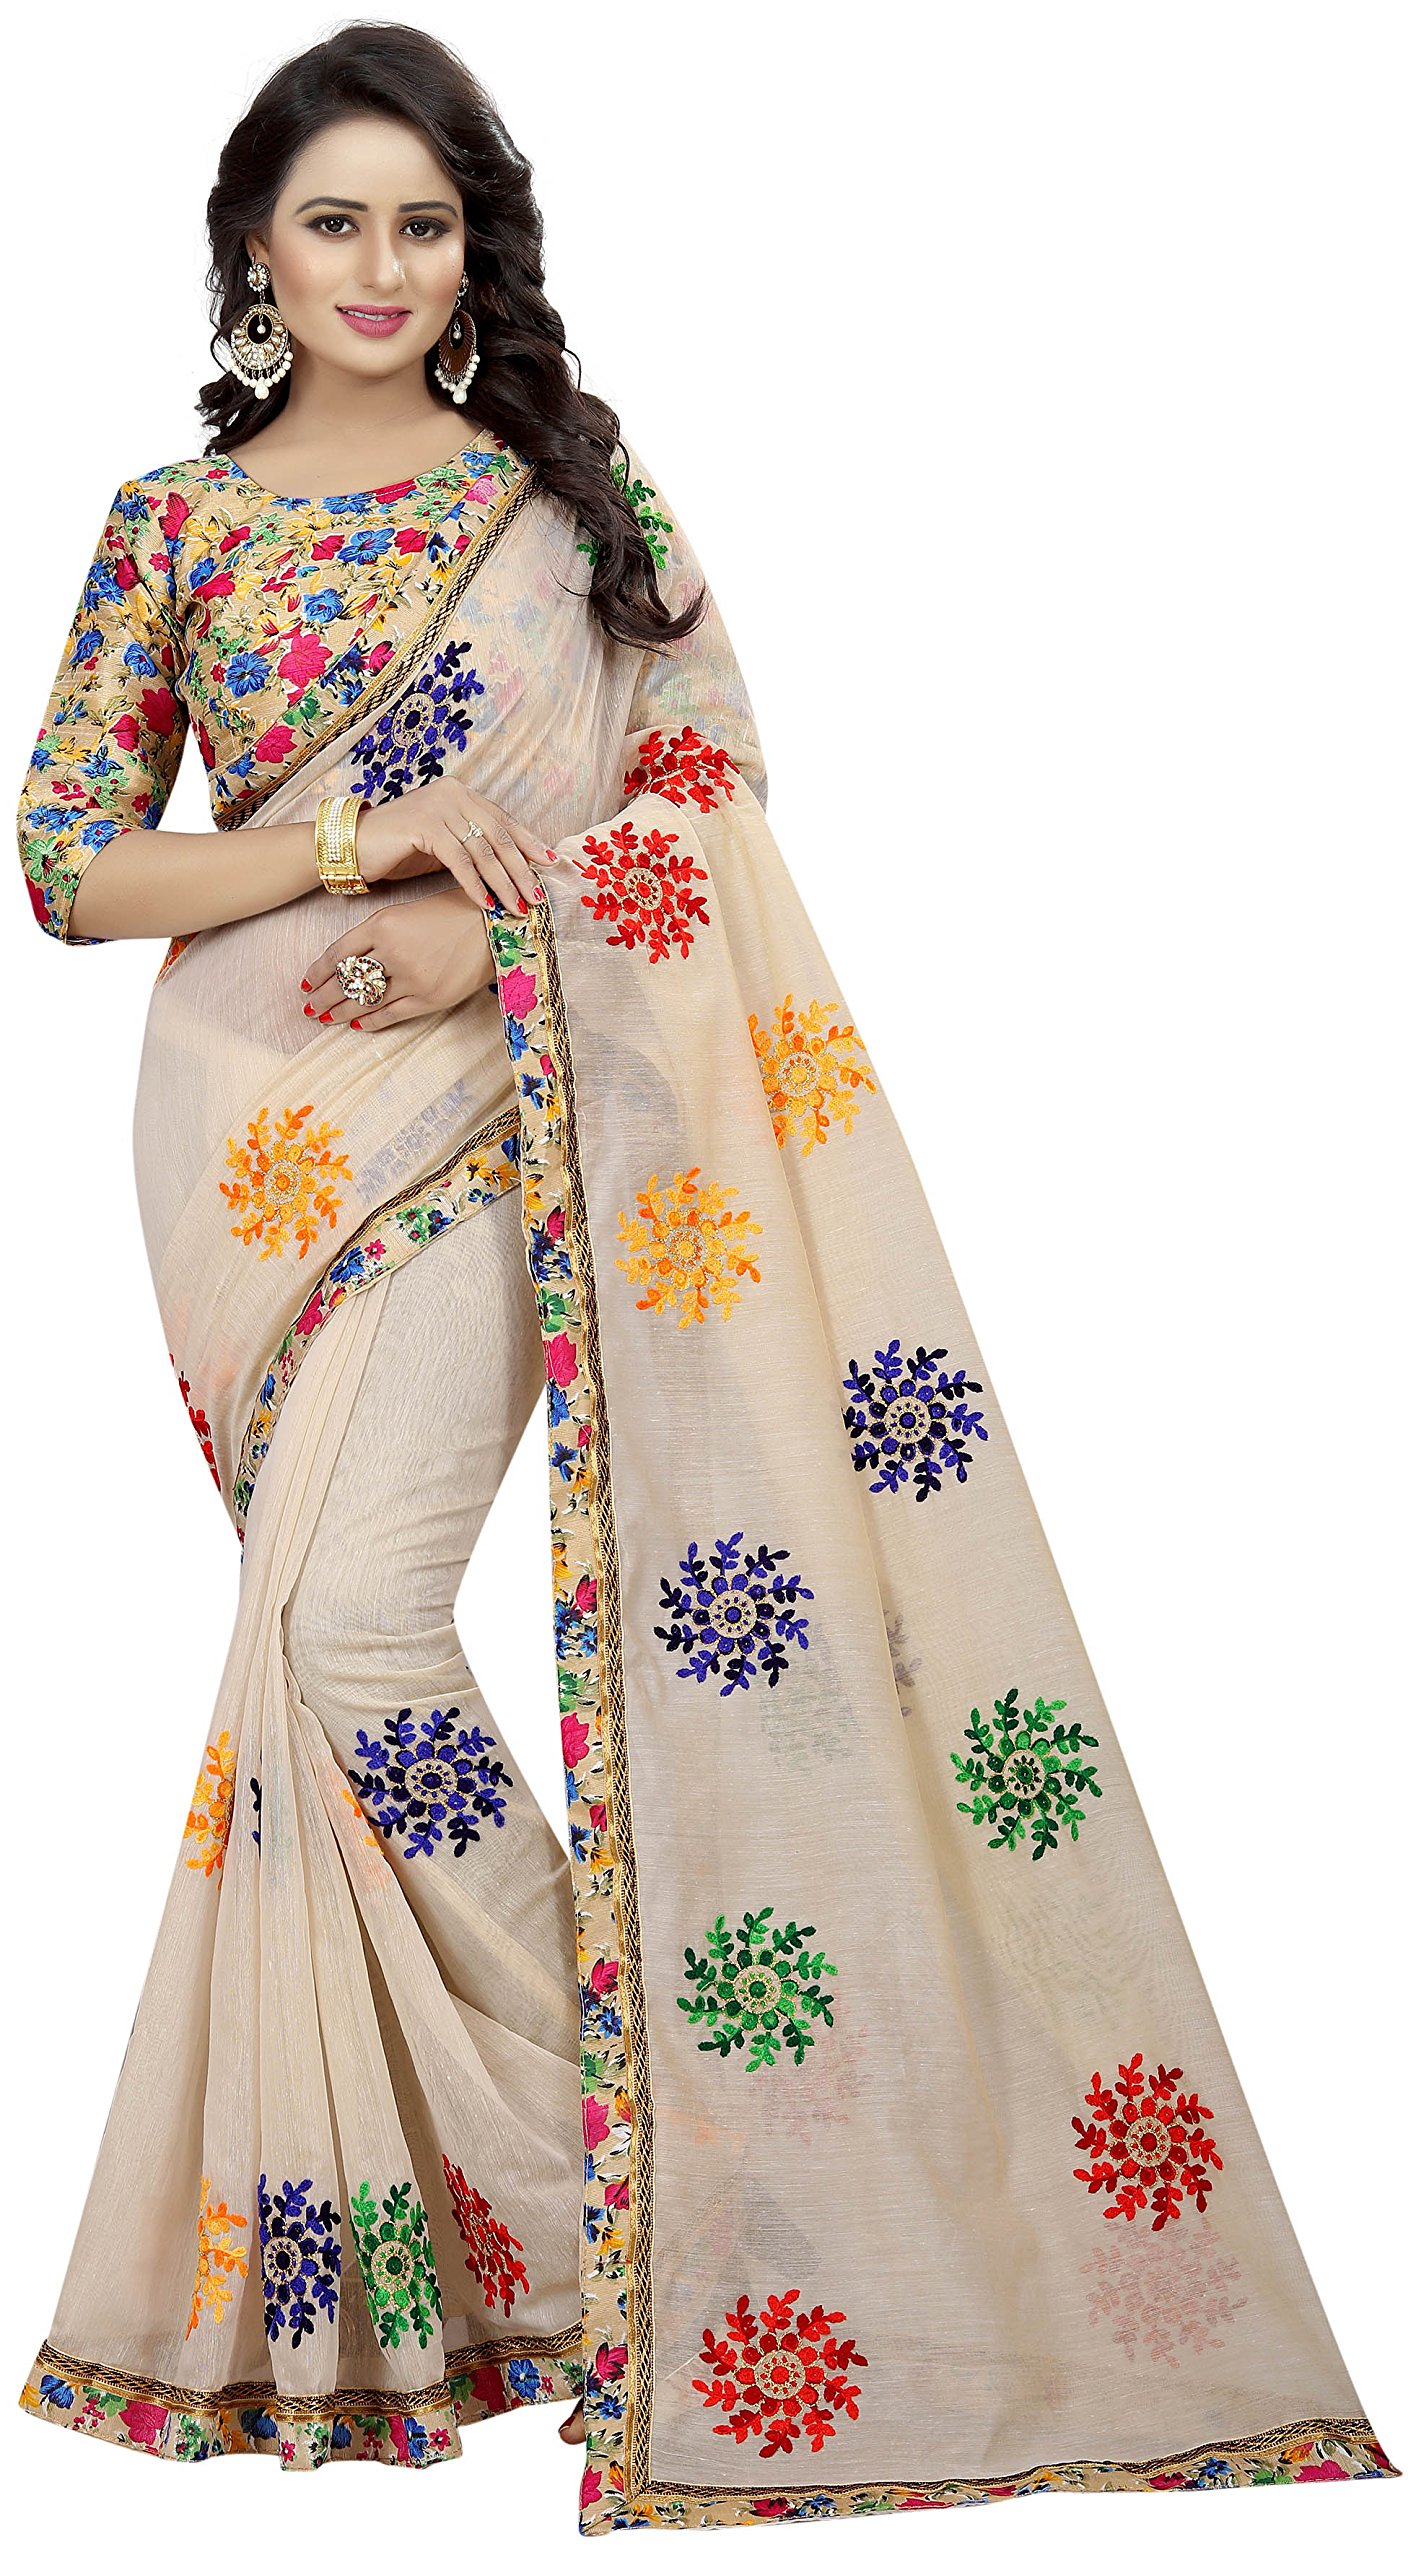 Women's Chanderi Cotton Embroidered Saree with Blouse Piece